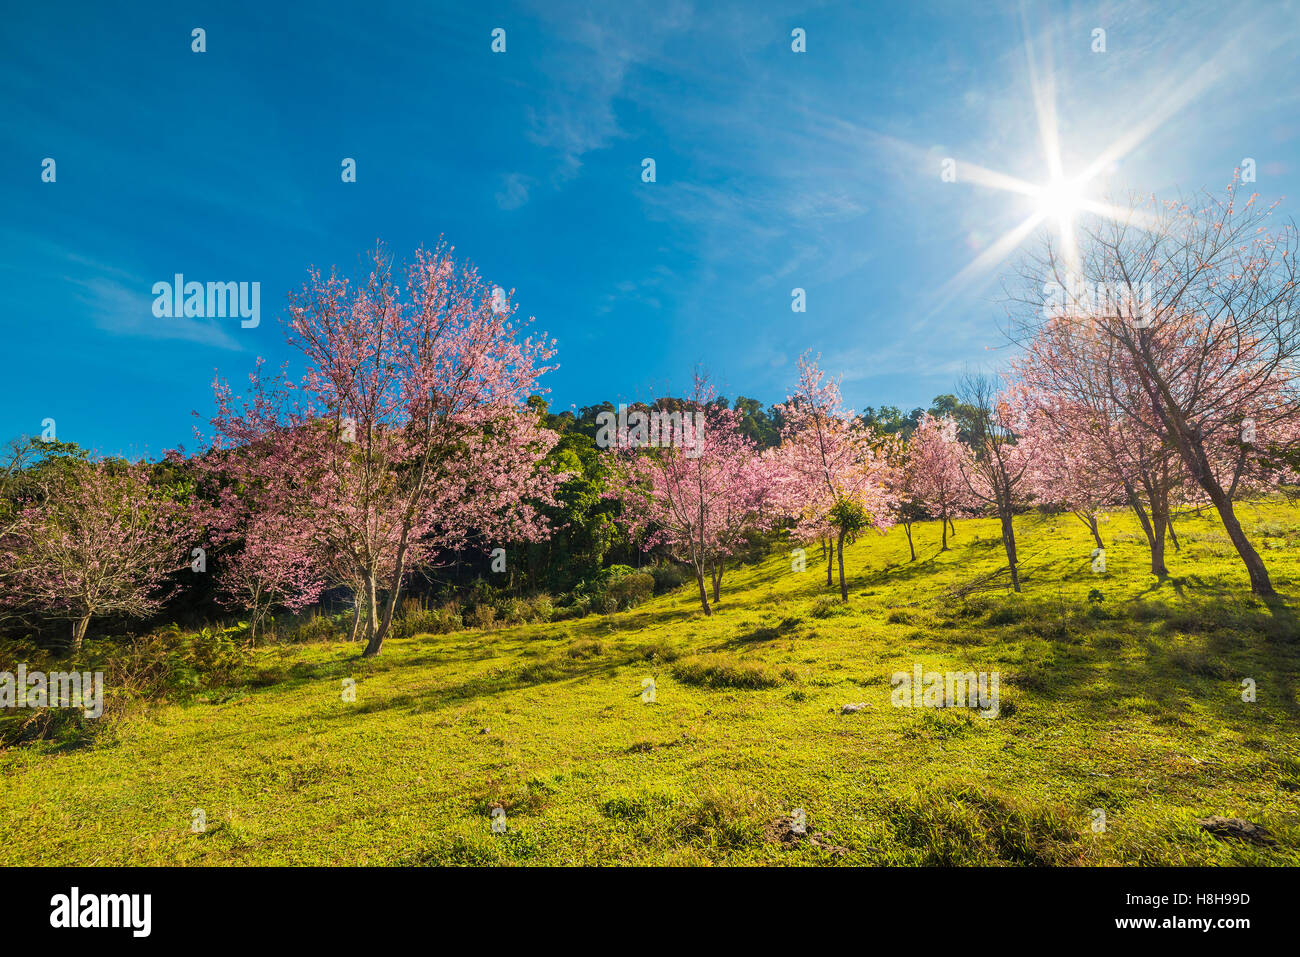 Wild Himalayan Cherry flower (Prunus cerasoides),Giant tiger flower in Thailand. - Stock Image